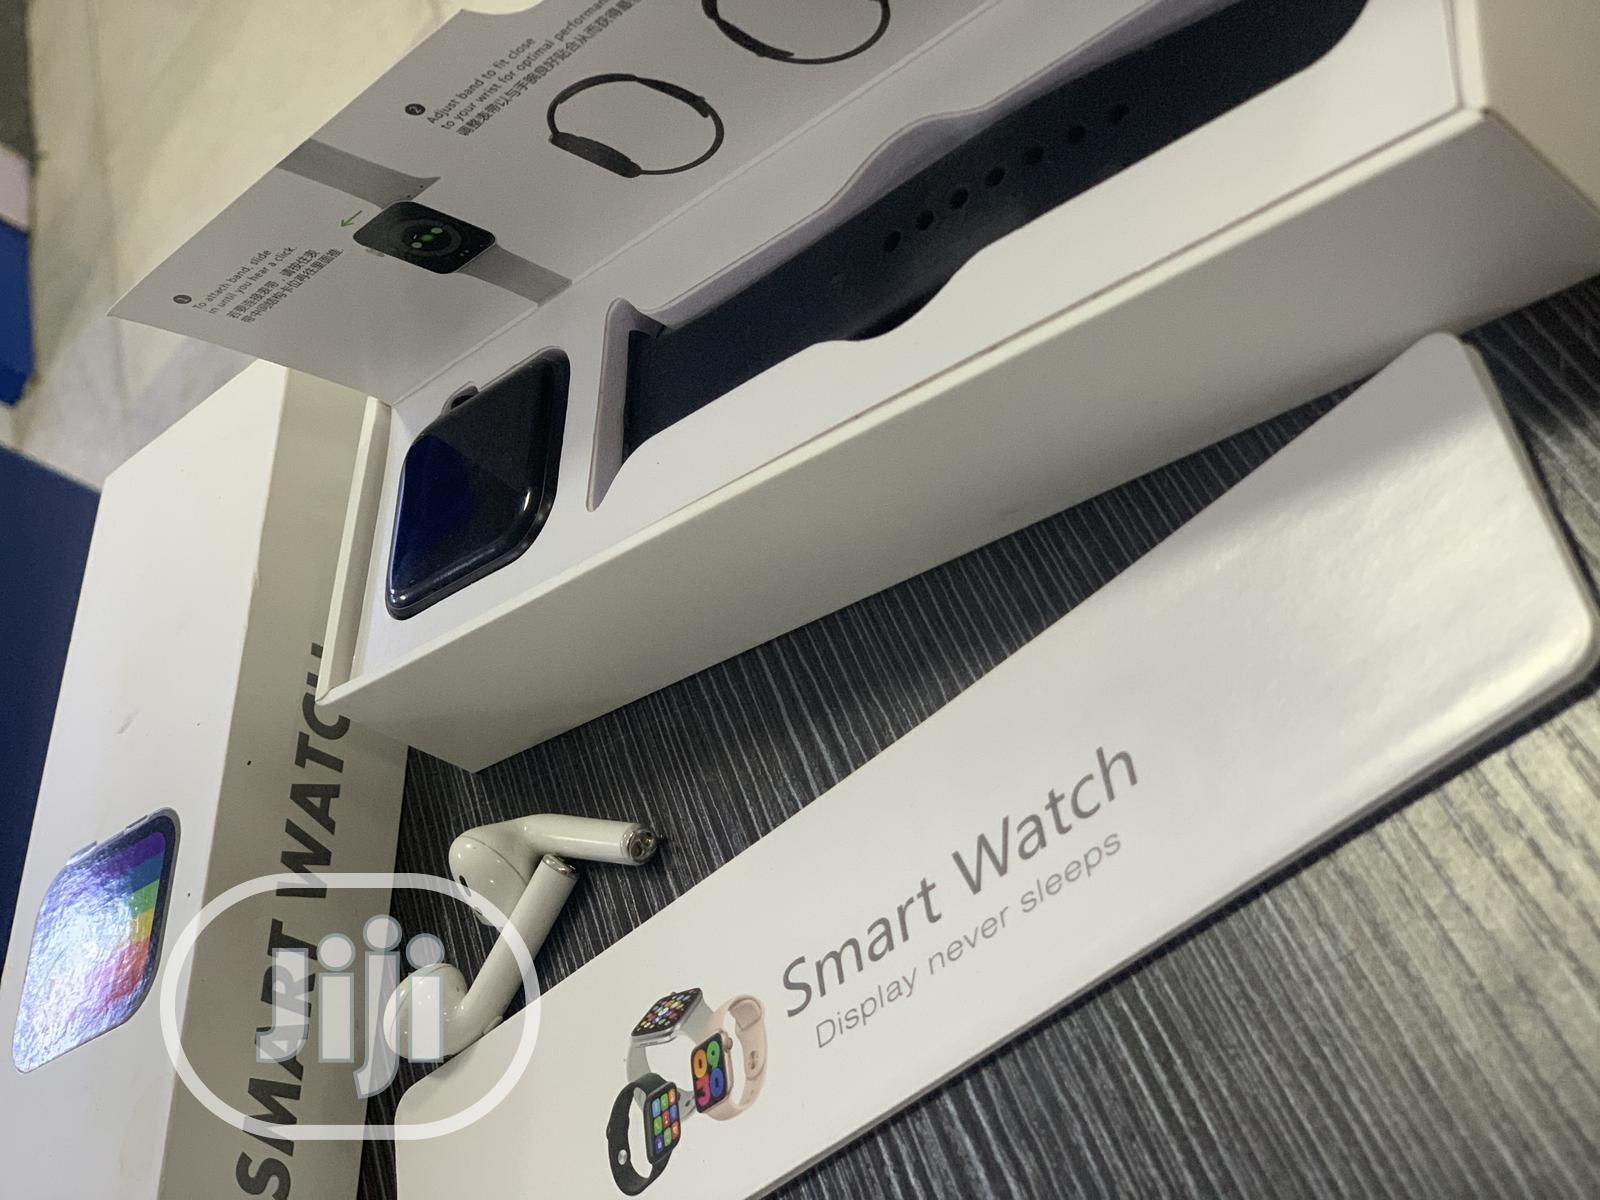 Archive: Fairly Used Series 6+ Apple Smartwatch Clone